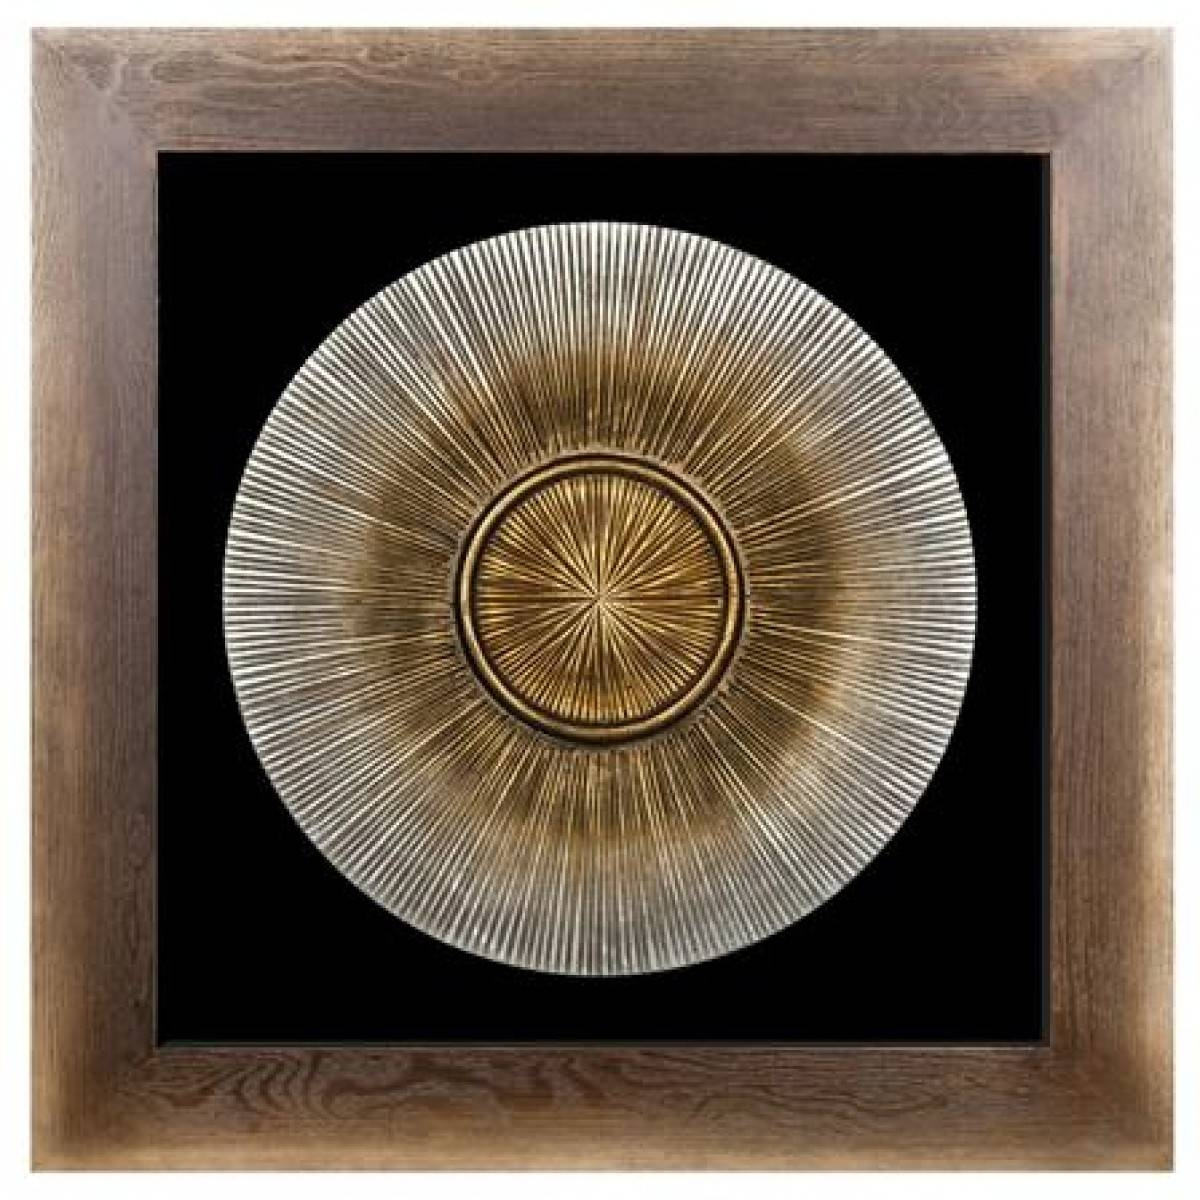 Wall Art Designs: Bronze Wall Art Newest Style Home Decorative With Regard To Most Popular Metal Wall Art Circles (View 11 of 20)